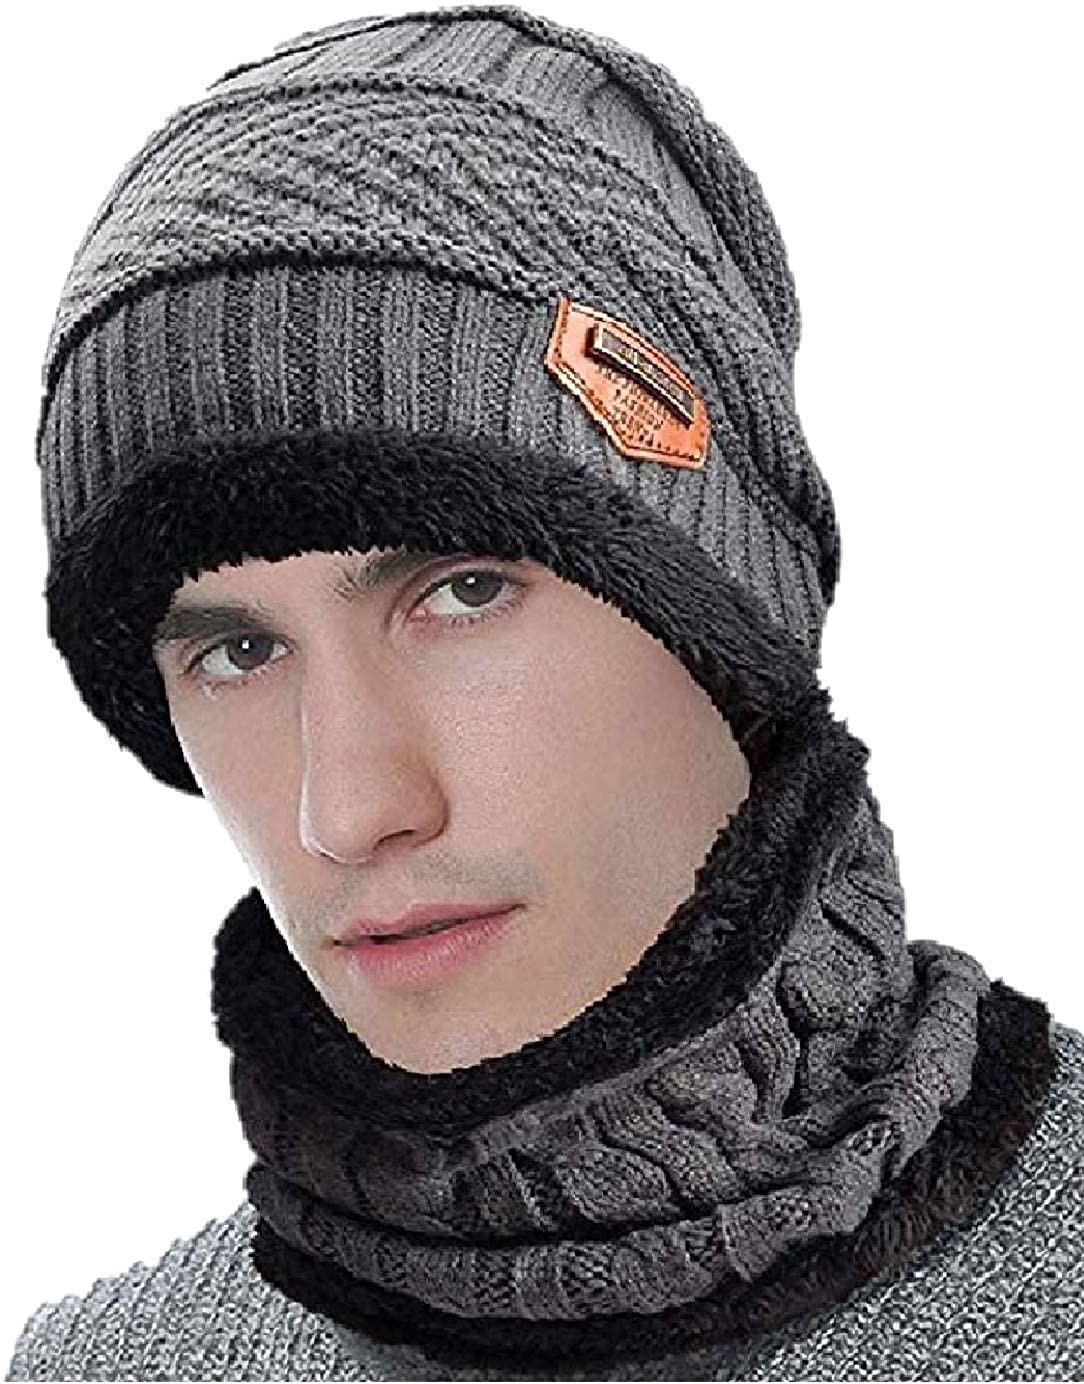 Zacharias Women S Woolen Cap With Neck Muffler Neckwarmer Set Of 2 Free Size Habibkamal Medium